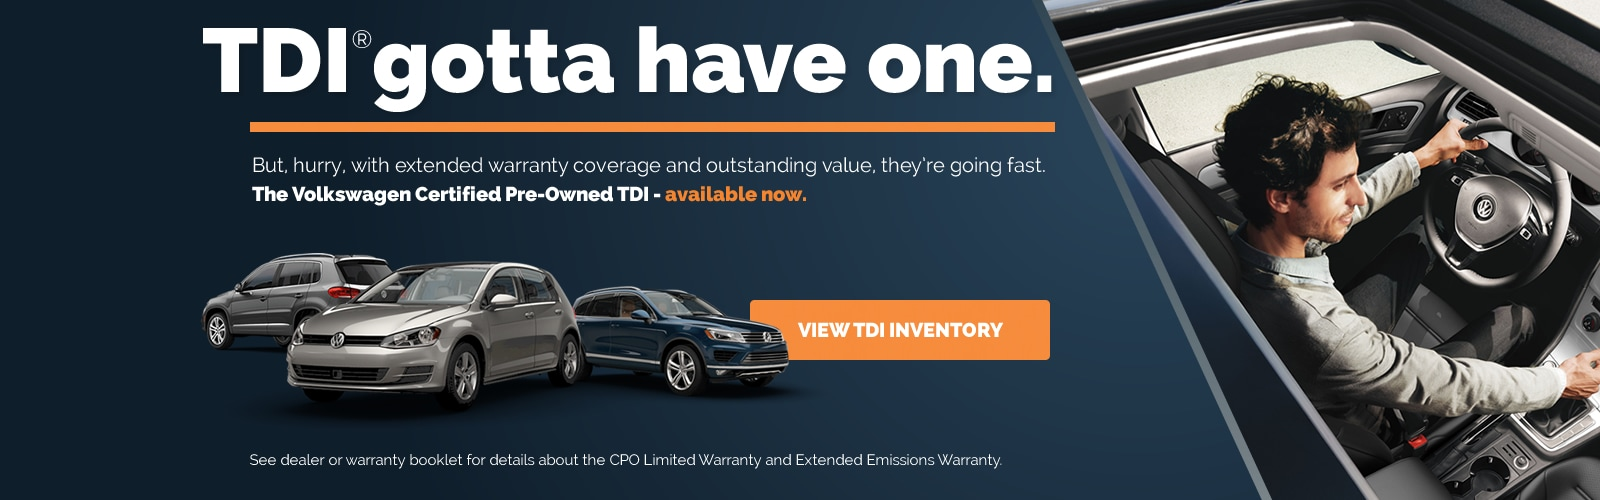 can you volkswgen repair extended content carchex to volkswagen afford your warranty